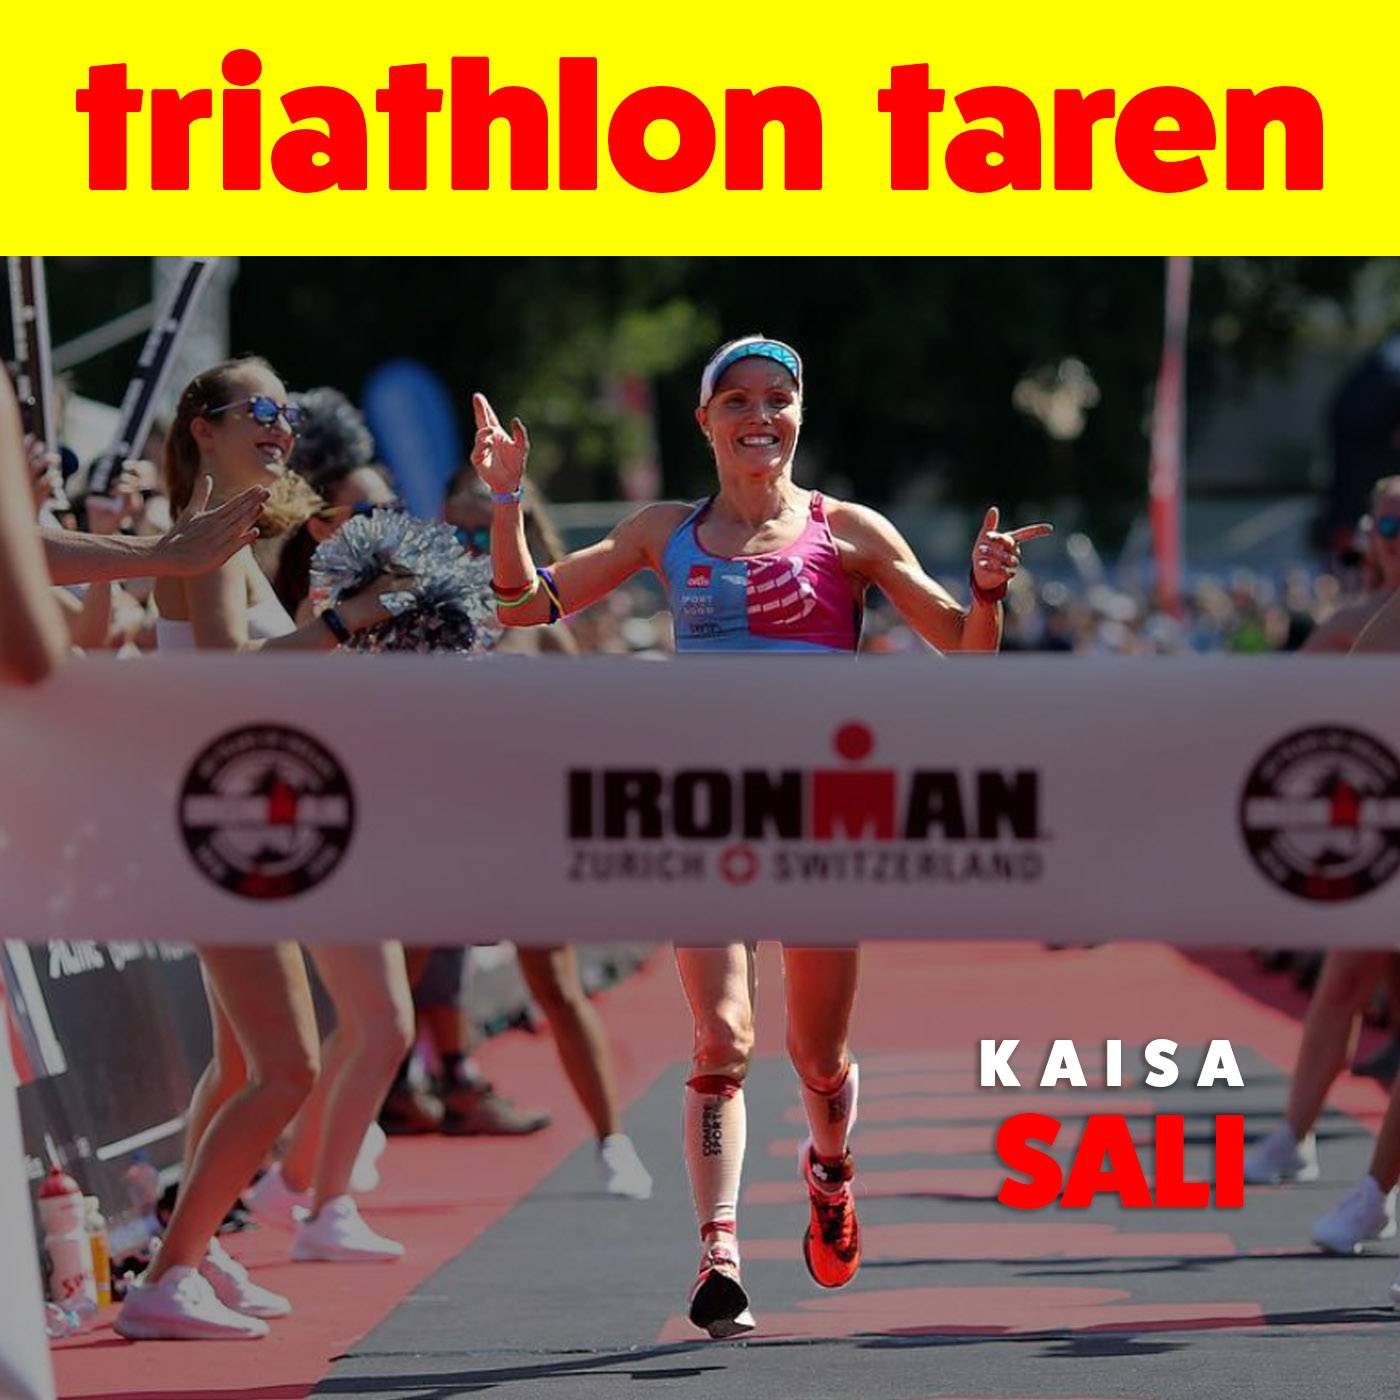 Taking a laid back approach to triathlon | Pro Kaisa Sali